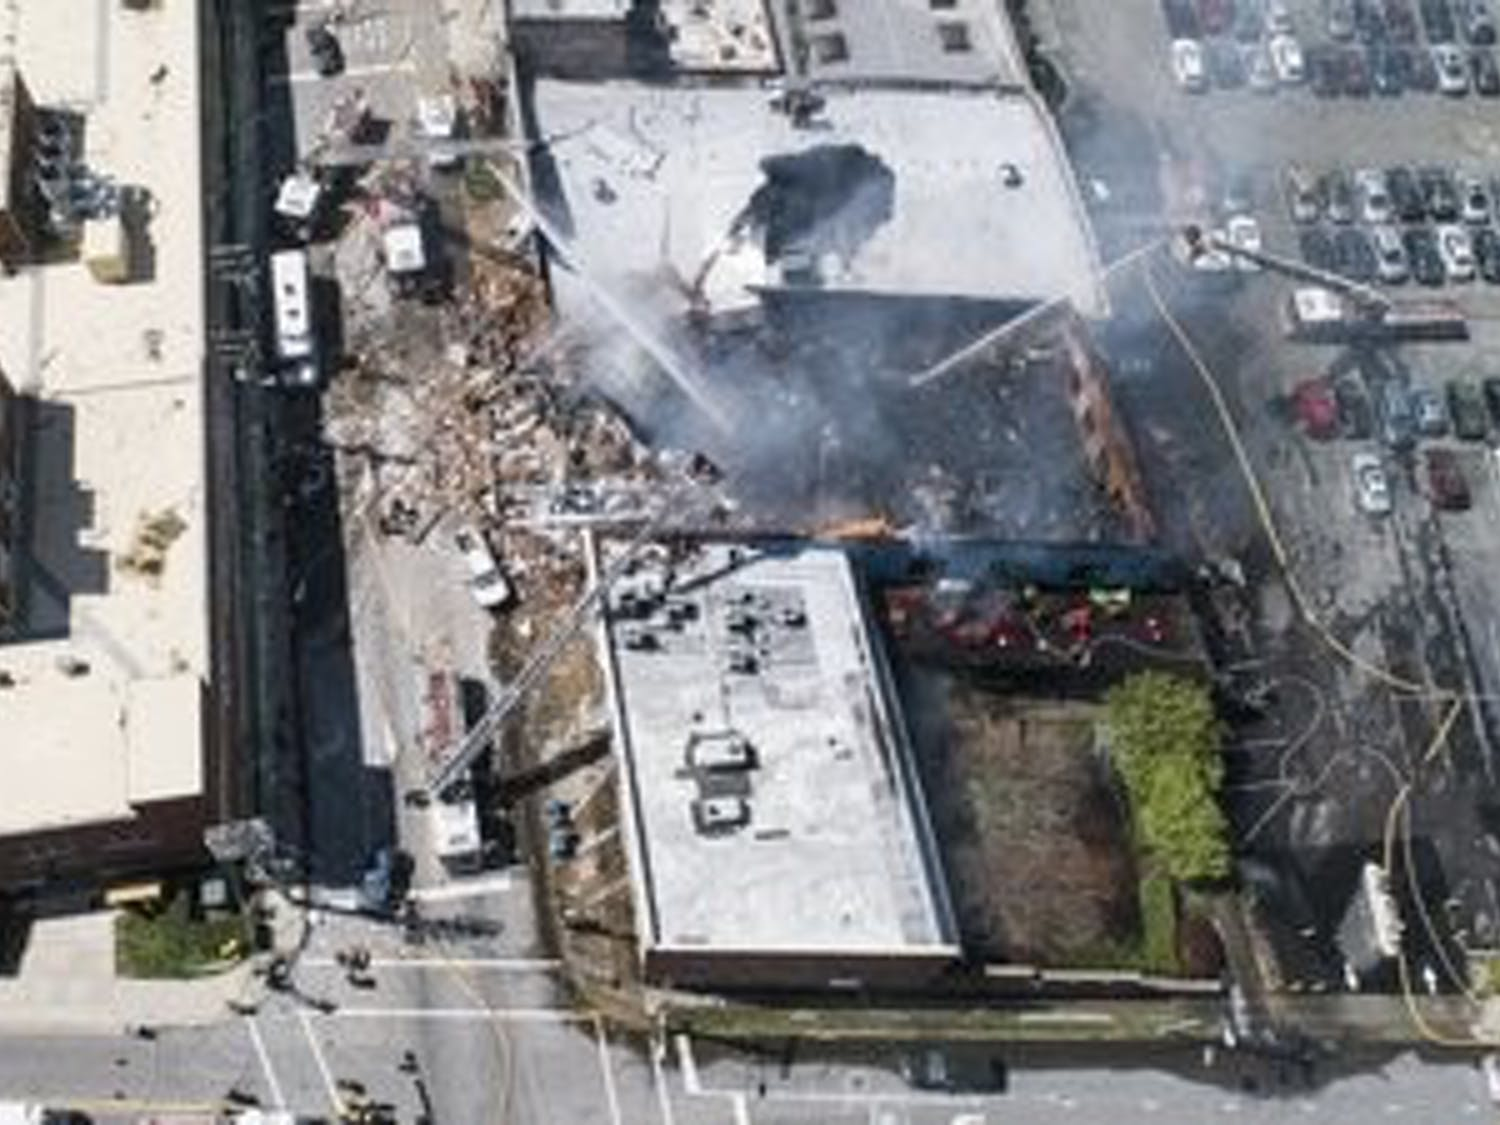 Firefighters actively fight a building fire after a gas leak lead to an explosion and collapse near Brightleaf Square Wednesday April 10, 2019 in Durham, N.C. (Julia Wall/Raleigh News & Observer/TNS)